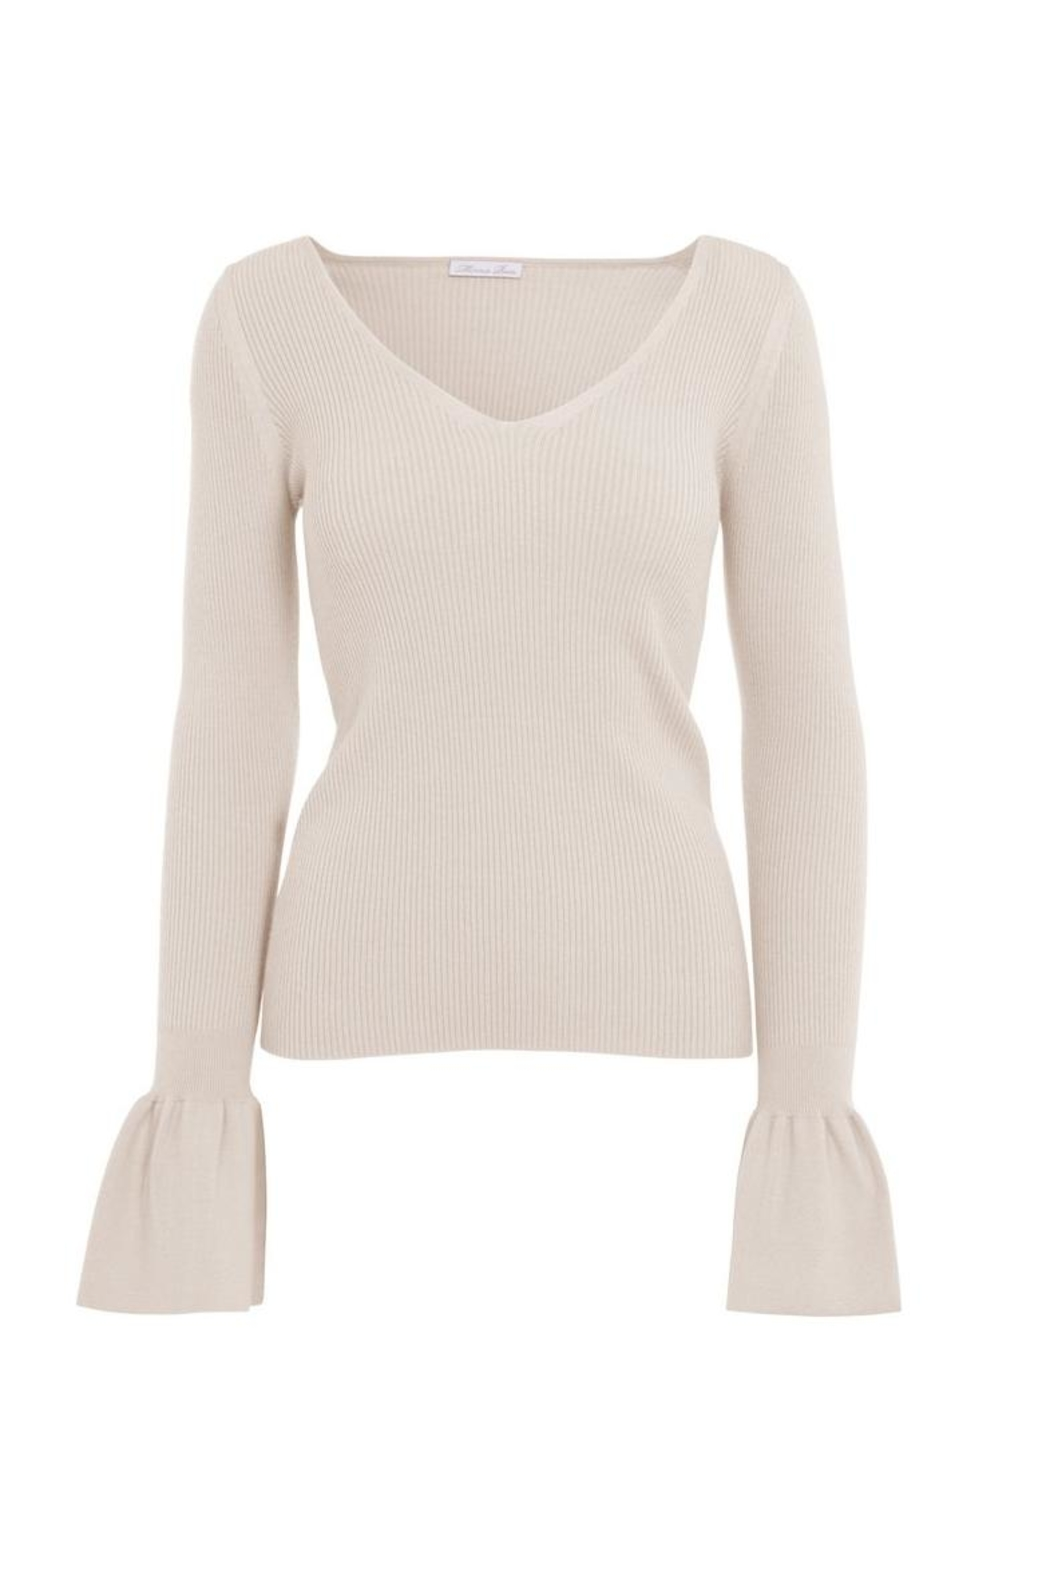 Minnie Rose Bell Sleeve Top - Main Image